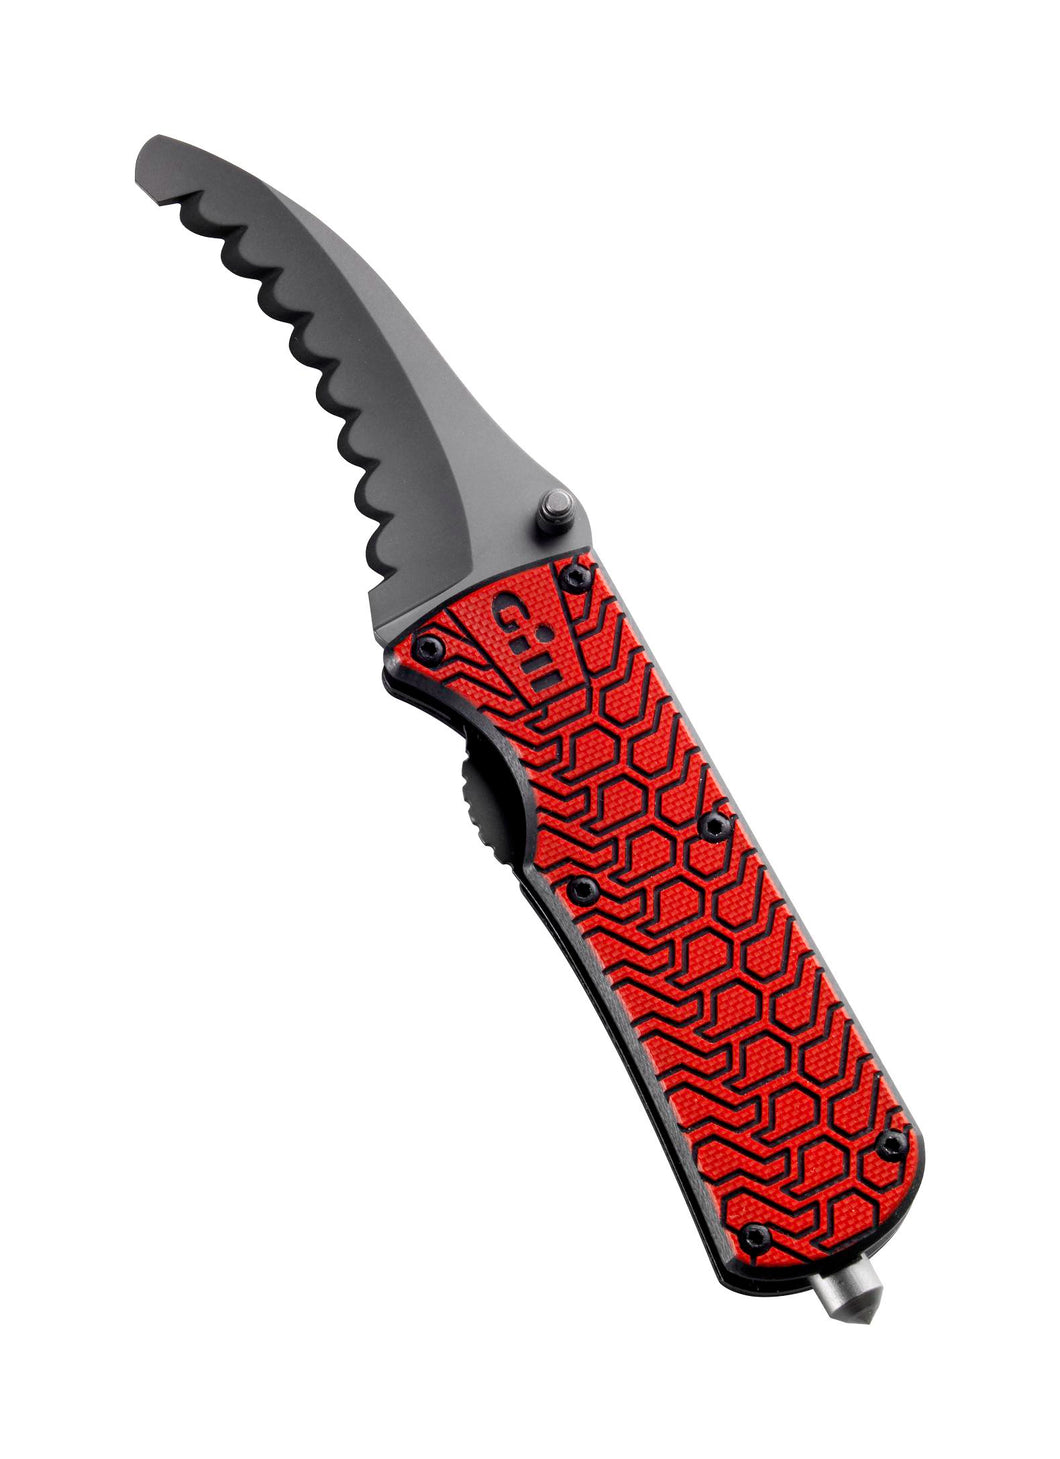 PERSONAL RESCUE KNIFE